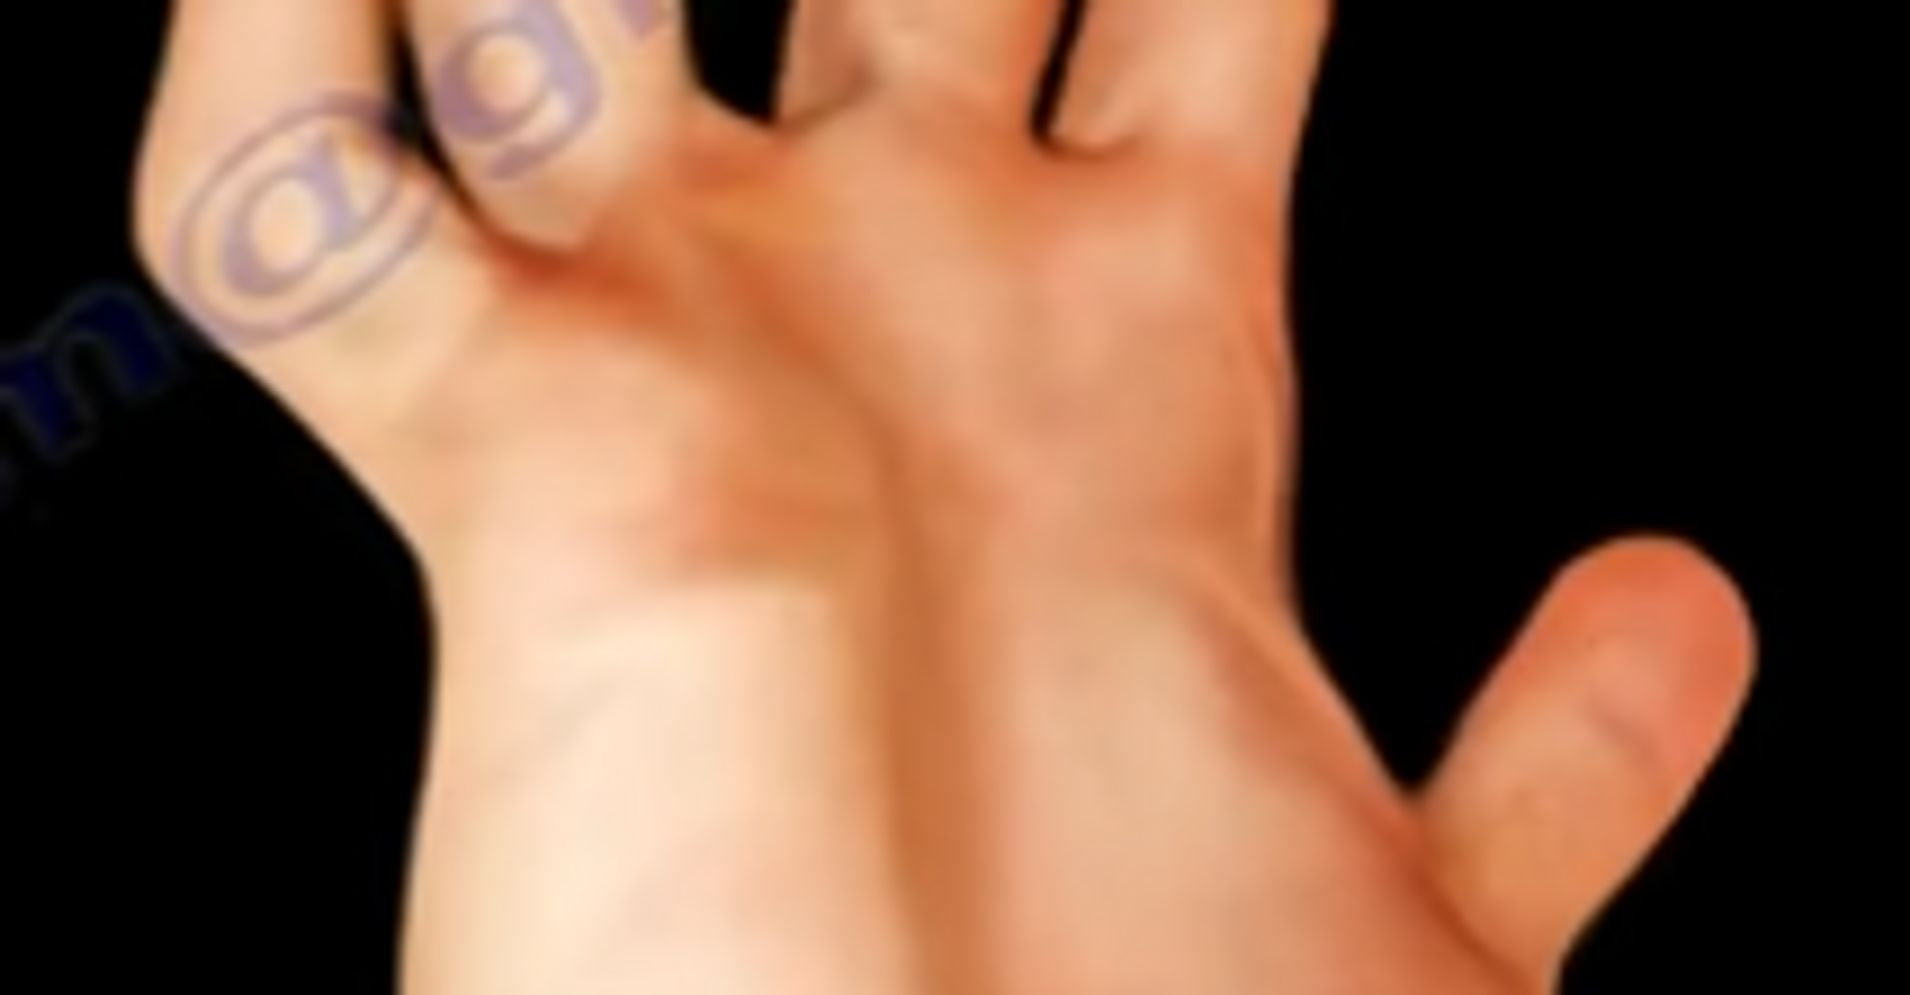 Ulnar Claw Hand Huffpost